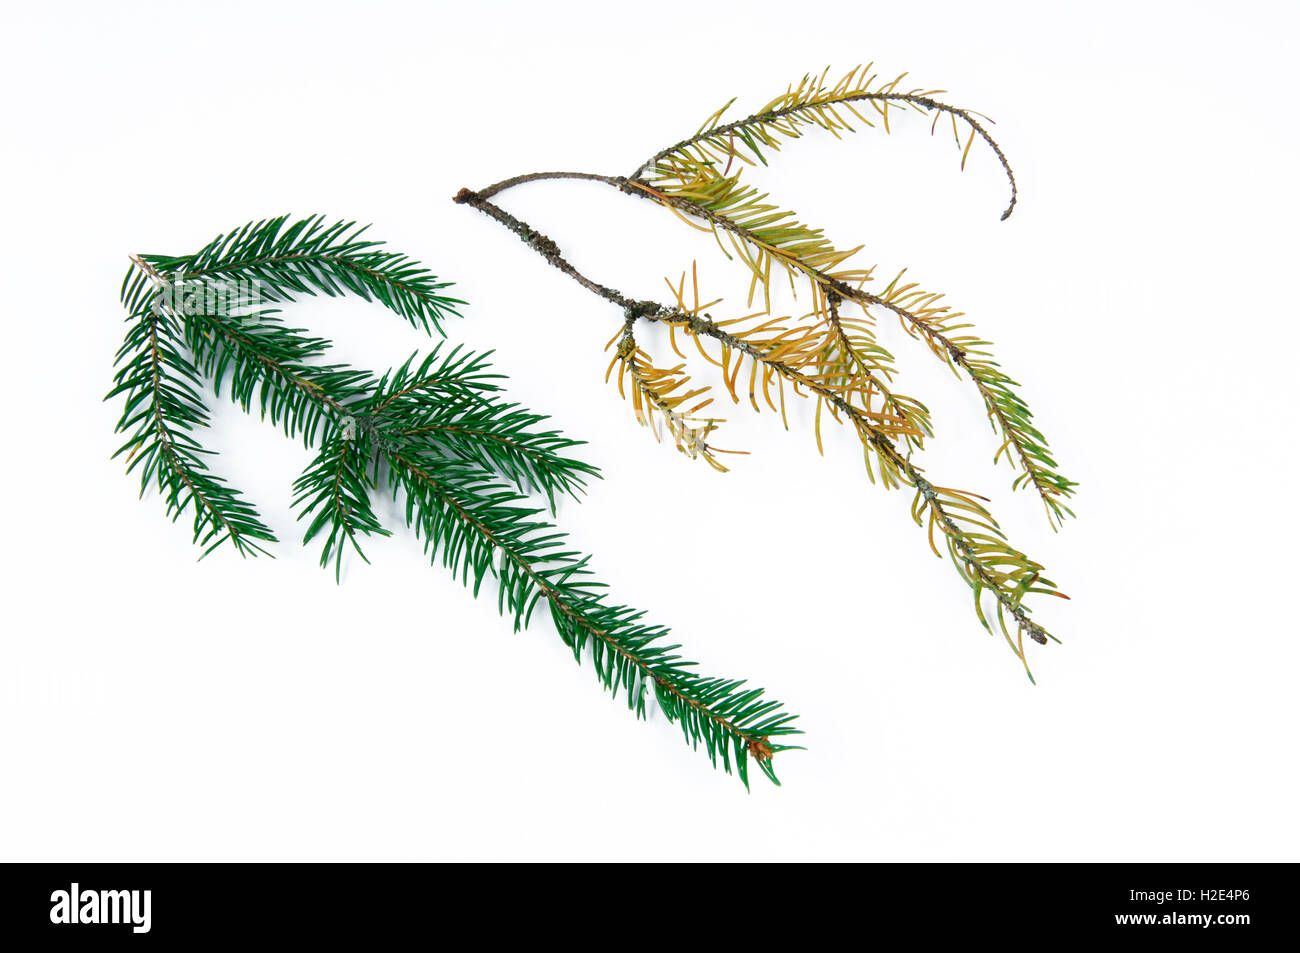 Norway Spruce, Common Spruce (Picea abies). Healthy and seriously damaged twig with fallen off needles and discoloration Stock Photo